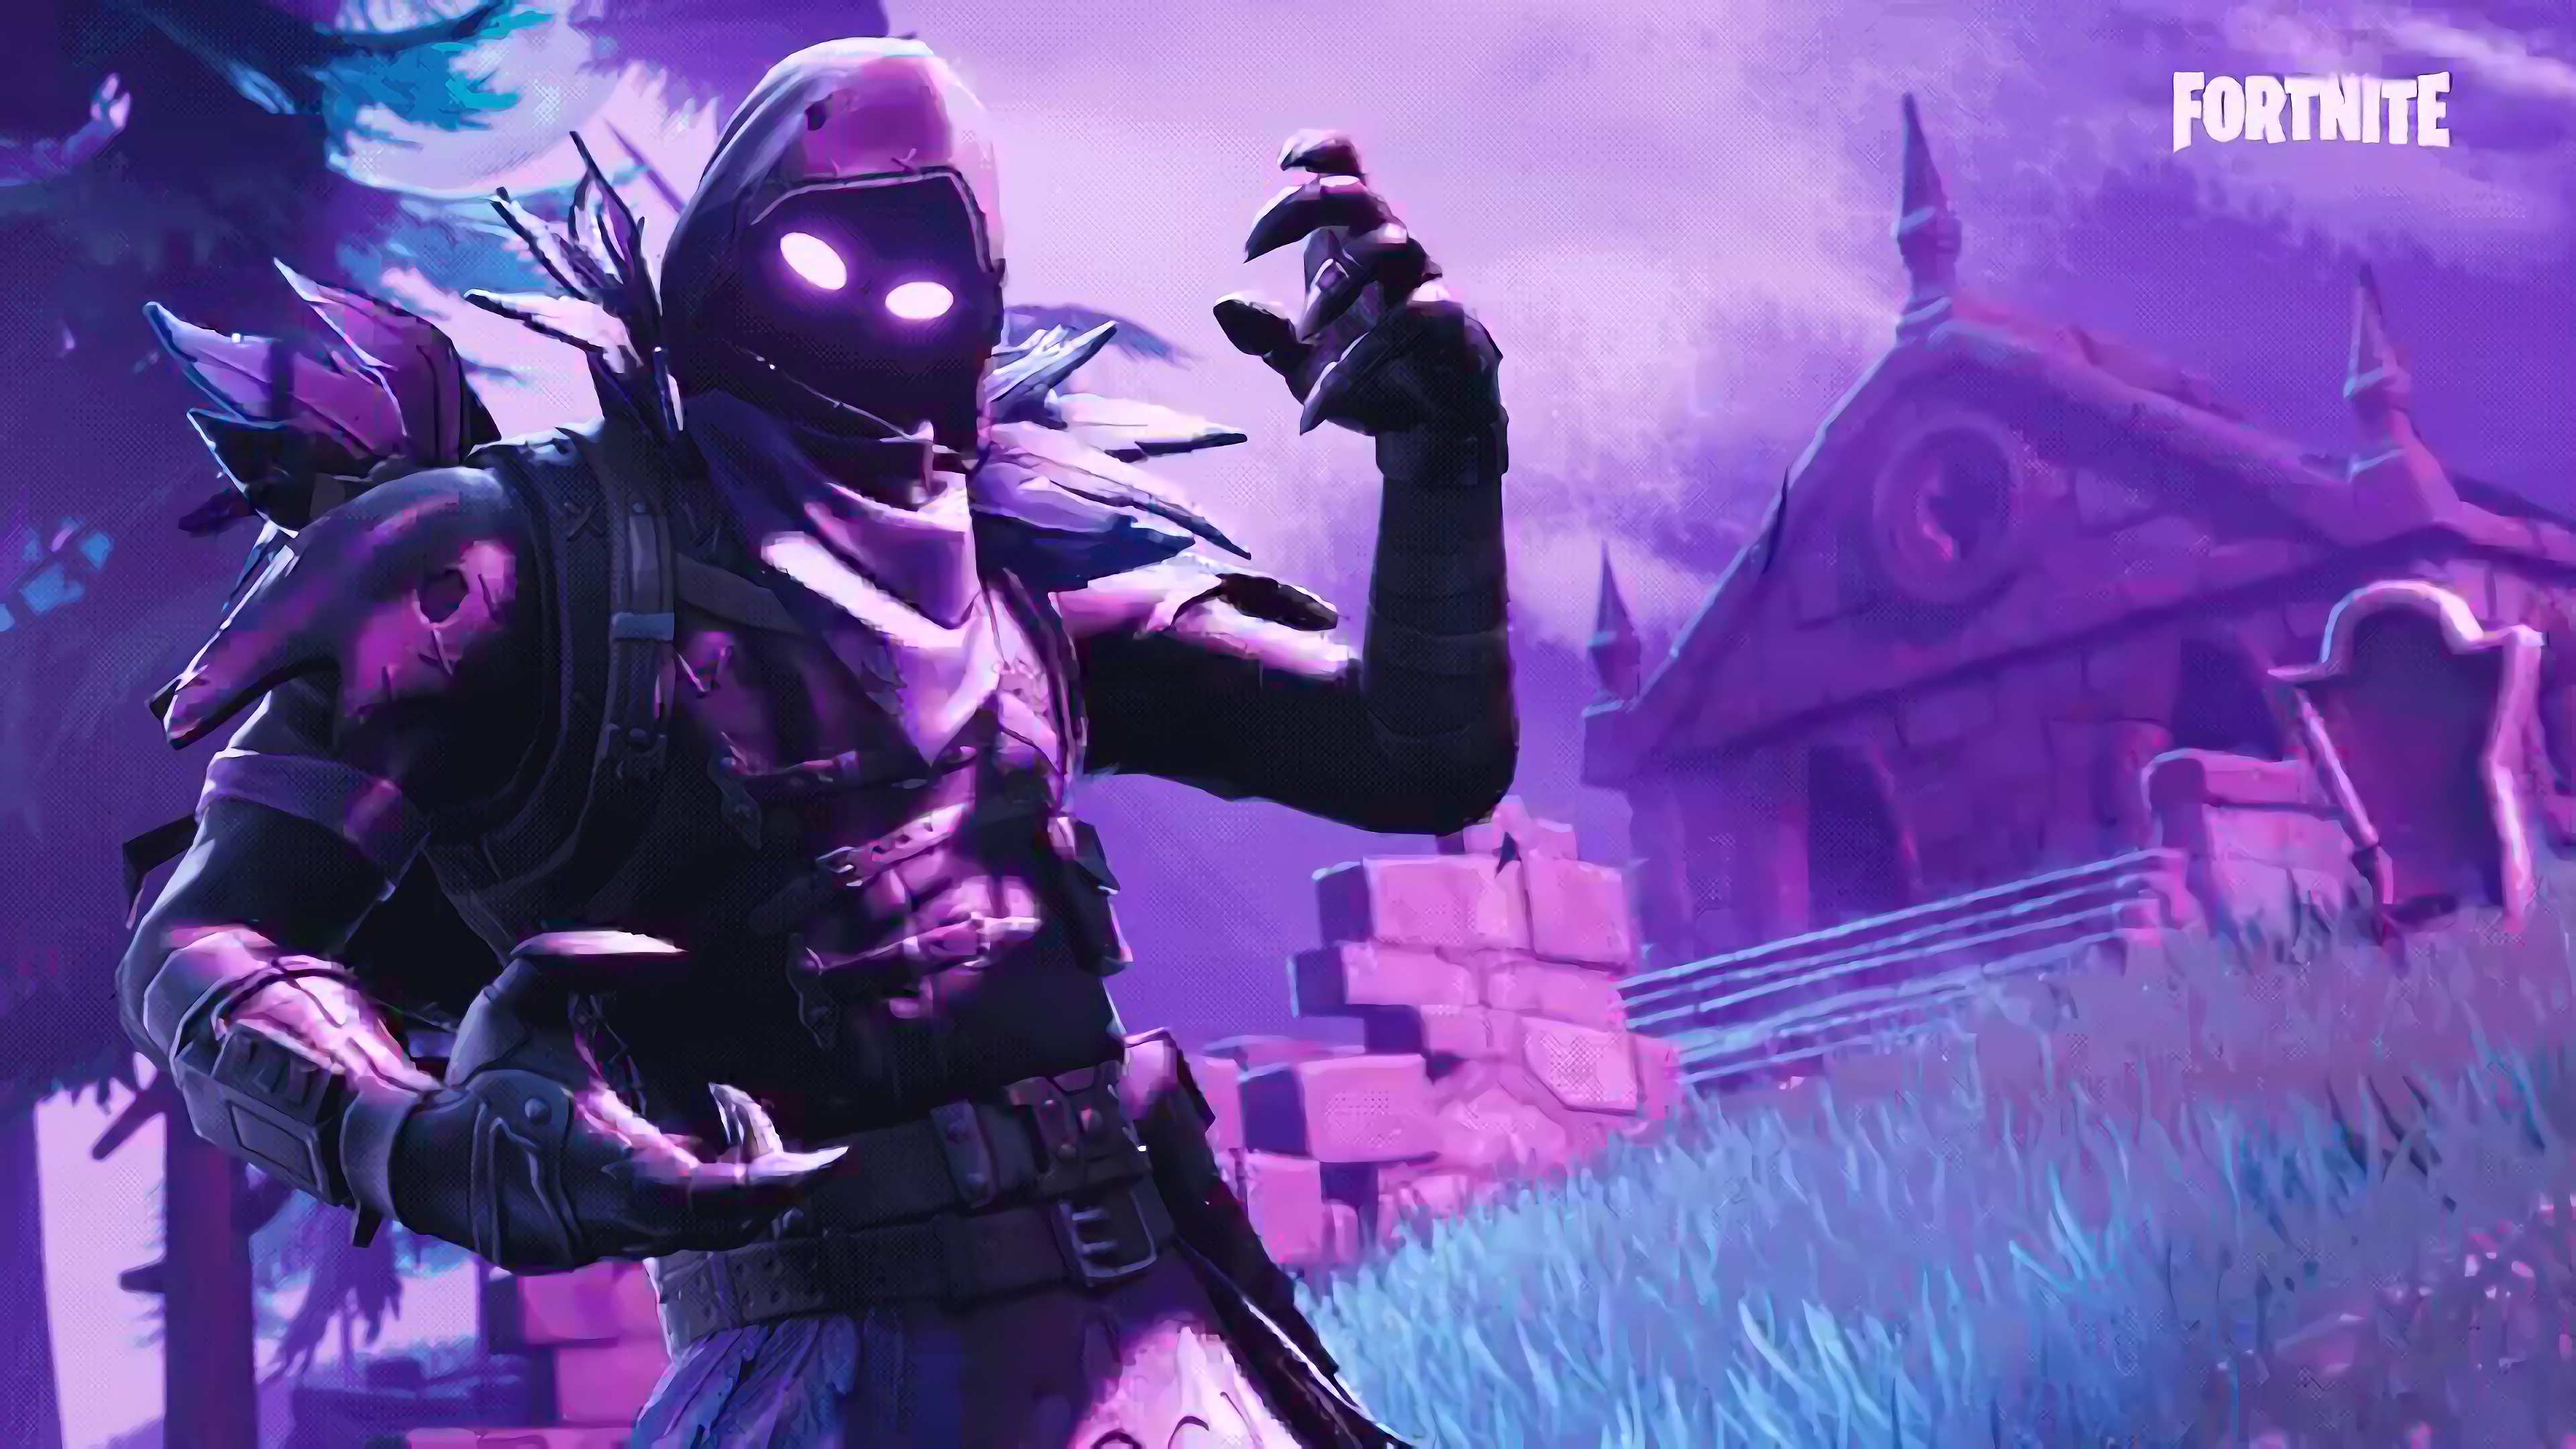 Free Download Fortnite Wallpaper Hd 4k 8k Battle Royale 3840x2160 For Your Desktop Mobile Tablet Explore 26 Fortnite Hd Wallpapers Fortnite Hd Wallpapers Fortnite 4k Hd Wallpapers Fortnite Wallpapers